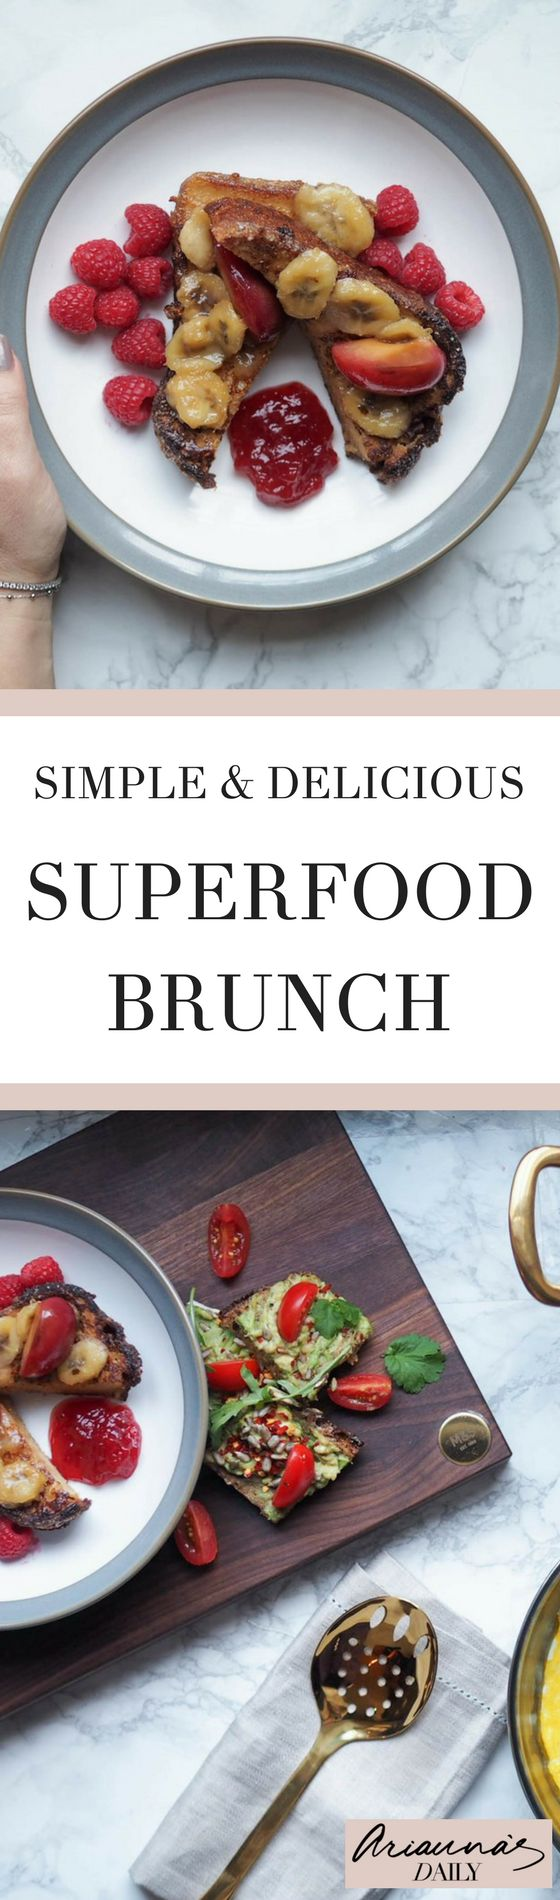 A delicious range of both vegan and super healthy brunch recipes that will set you up for the day. Click through for the full brunch menu of superfoods. Perfect for the new year! #superfood #brunch #brunchrecipes #ariannasdaily